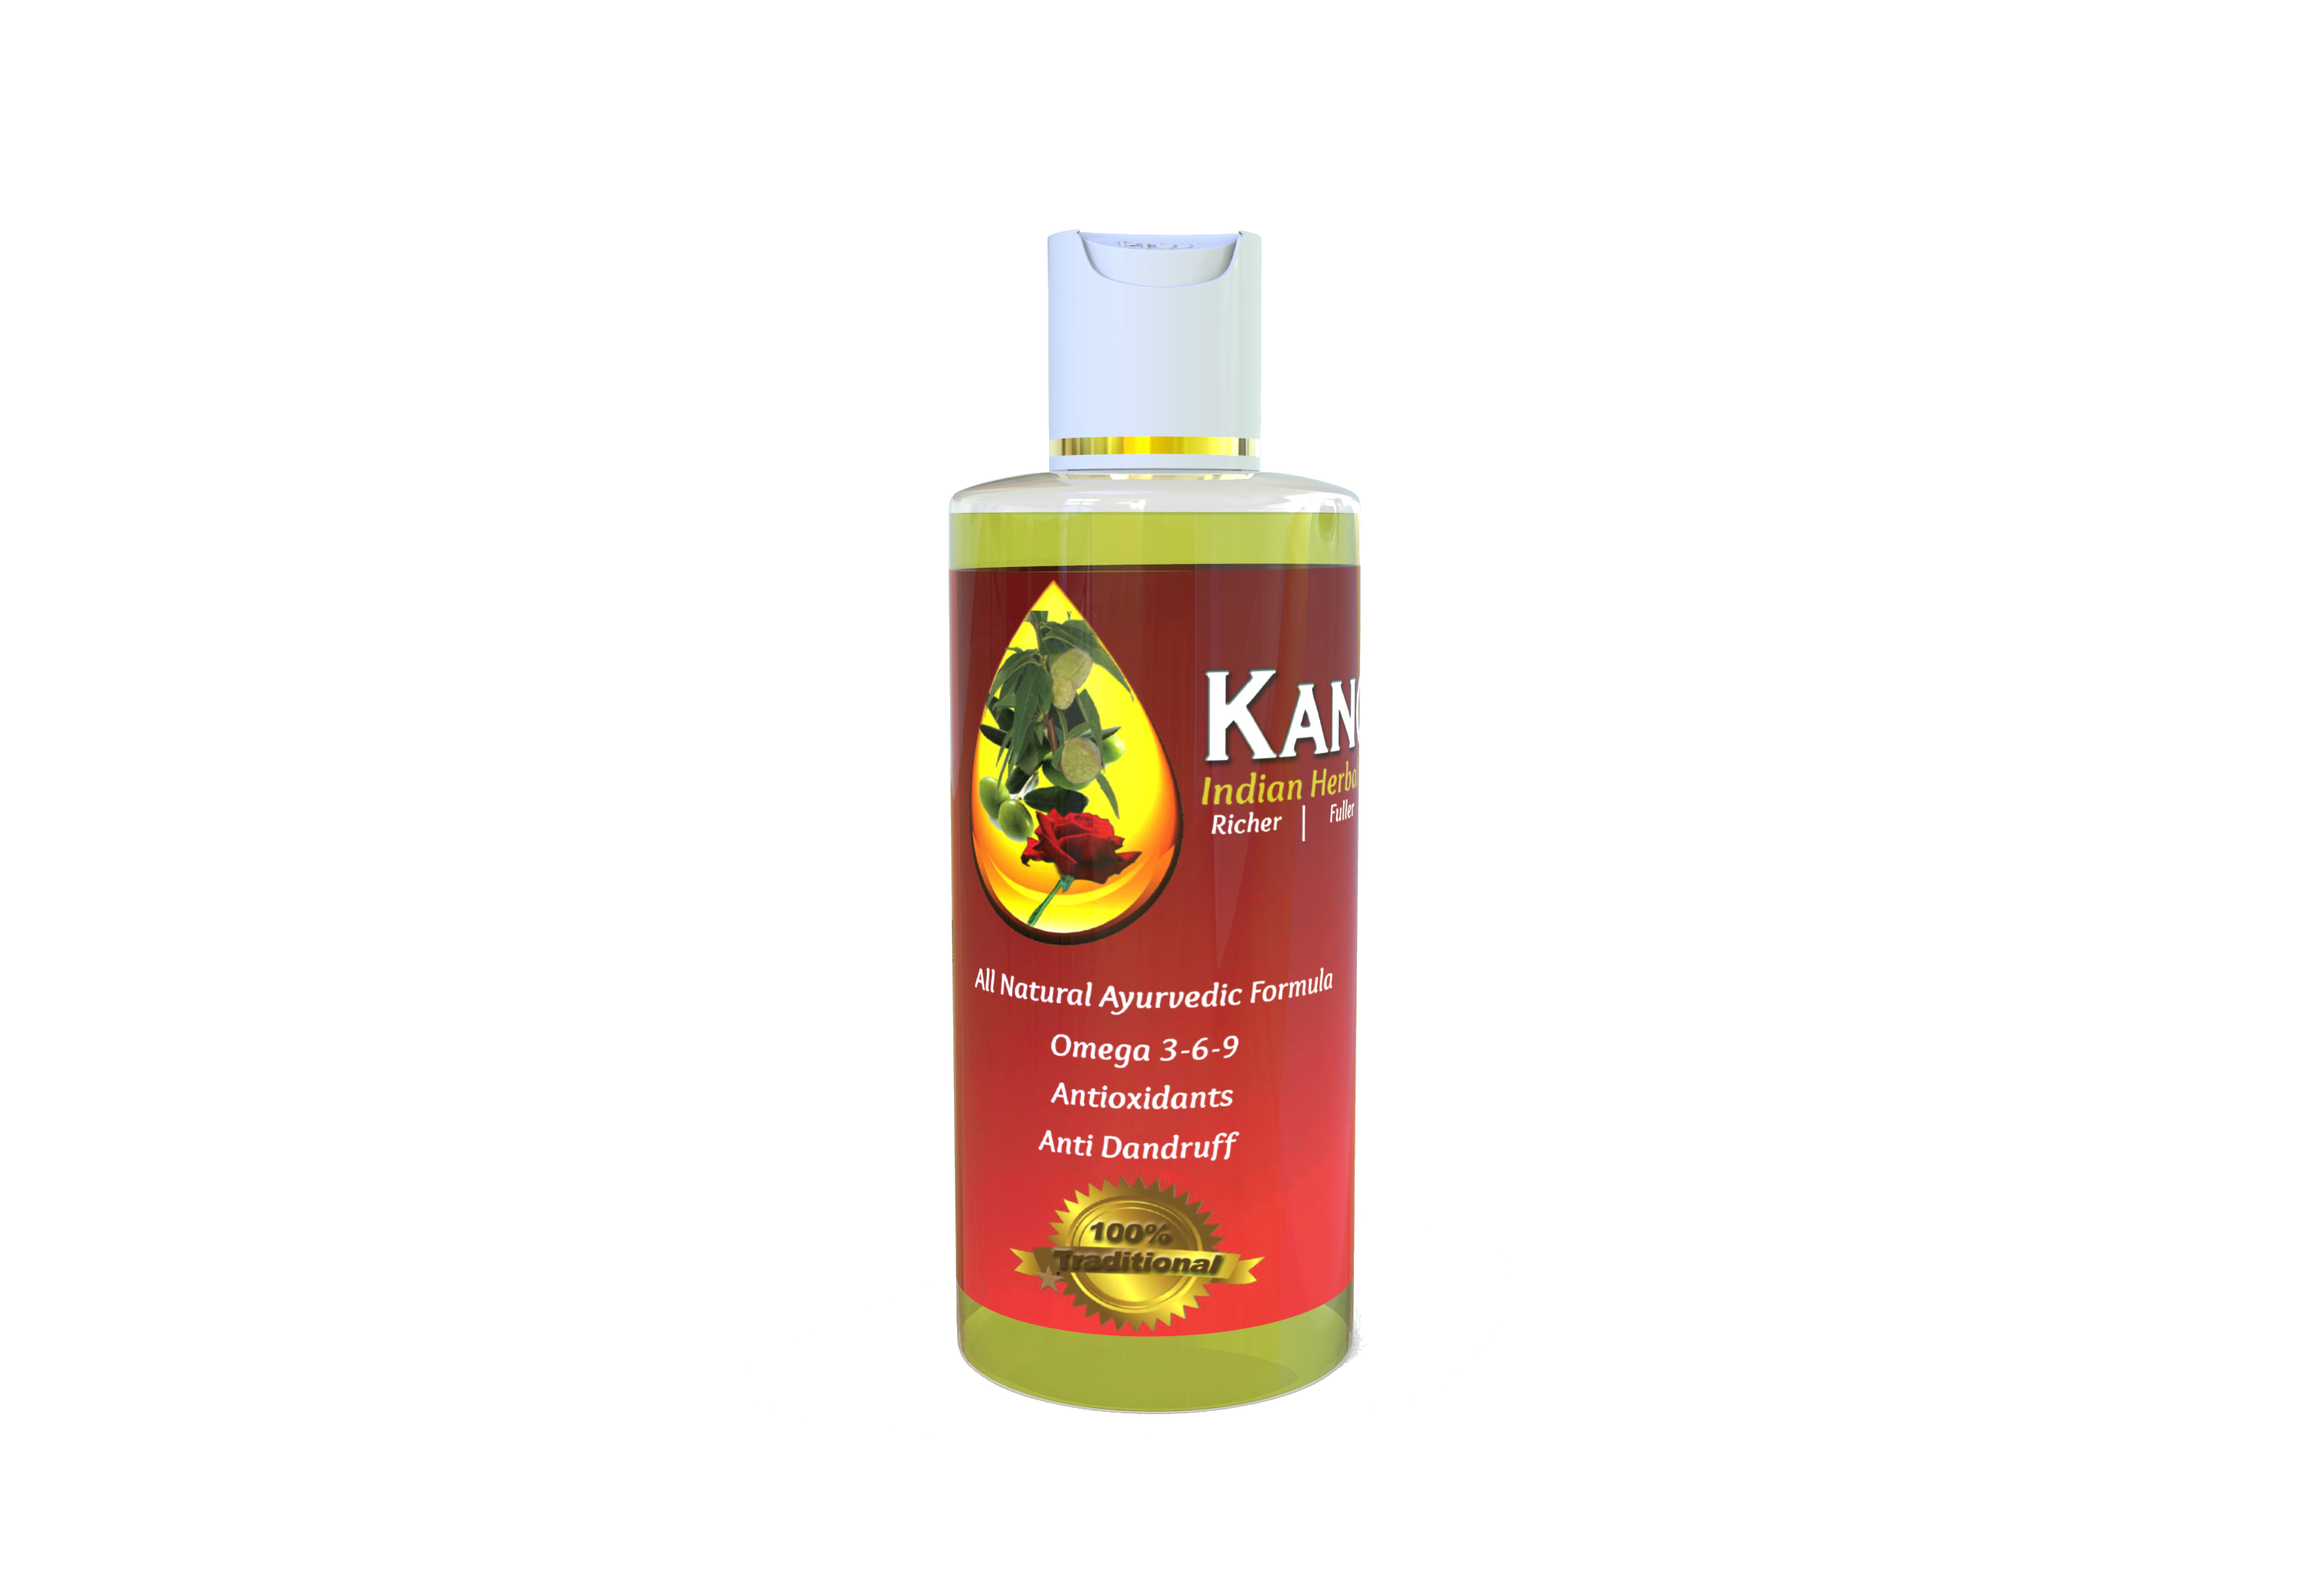 Kanchiindianoil.us - Kanchi Indian Herbal Hair Oil - Natural Hair Oil Treatment - Naturally Lavish Hair - Indian Oil Treatment for Hair and Scalp